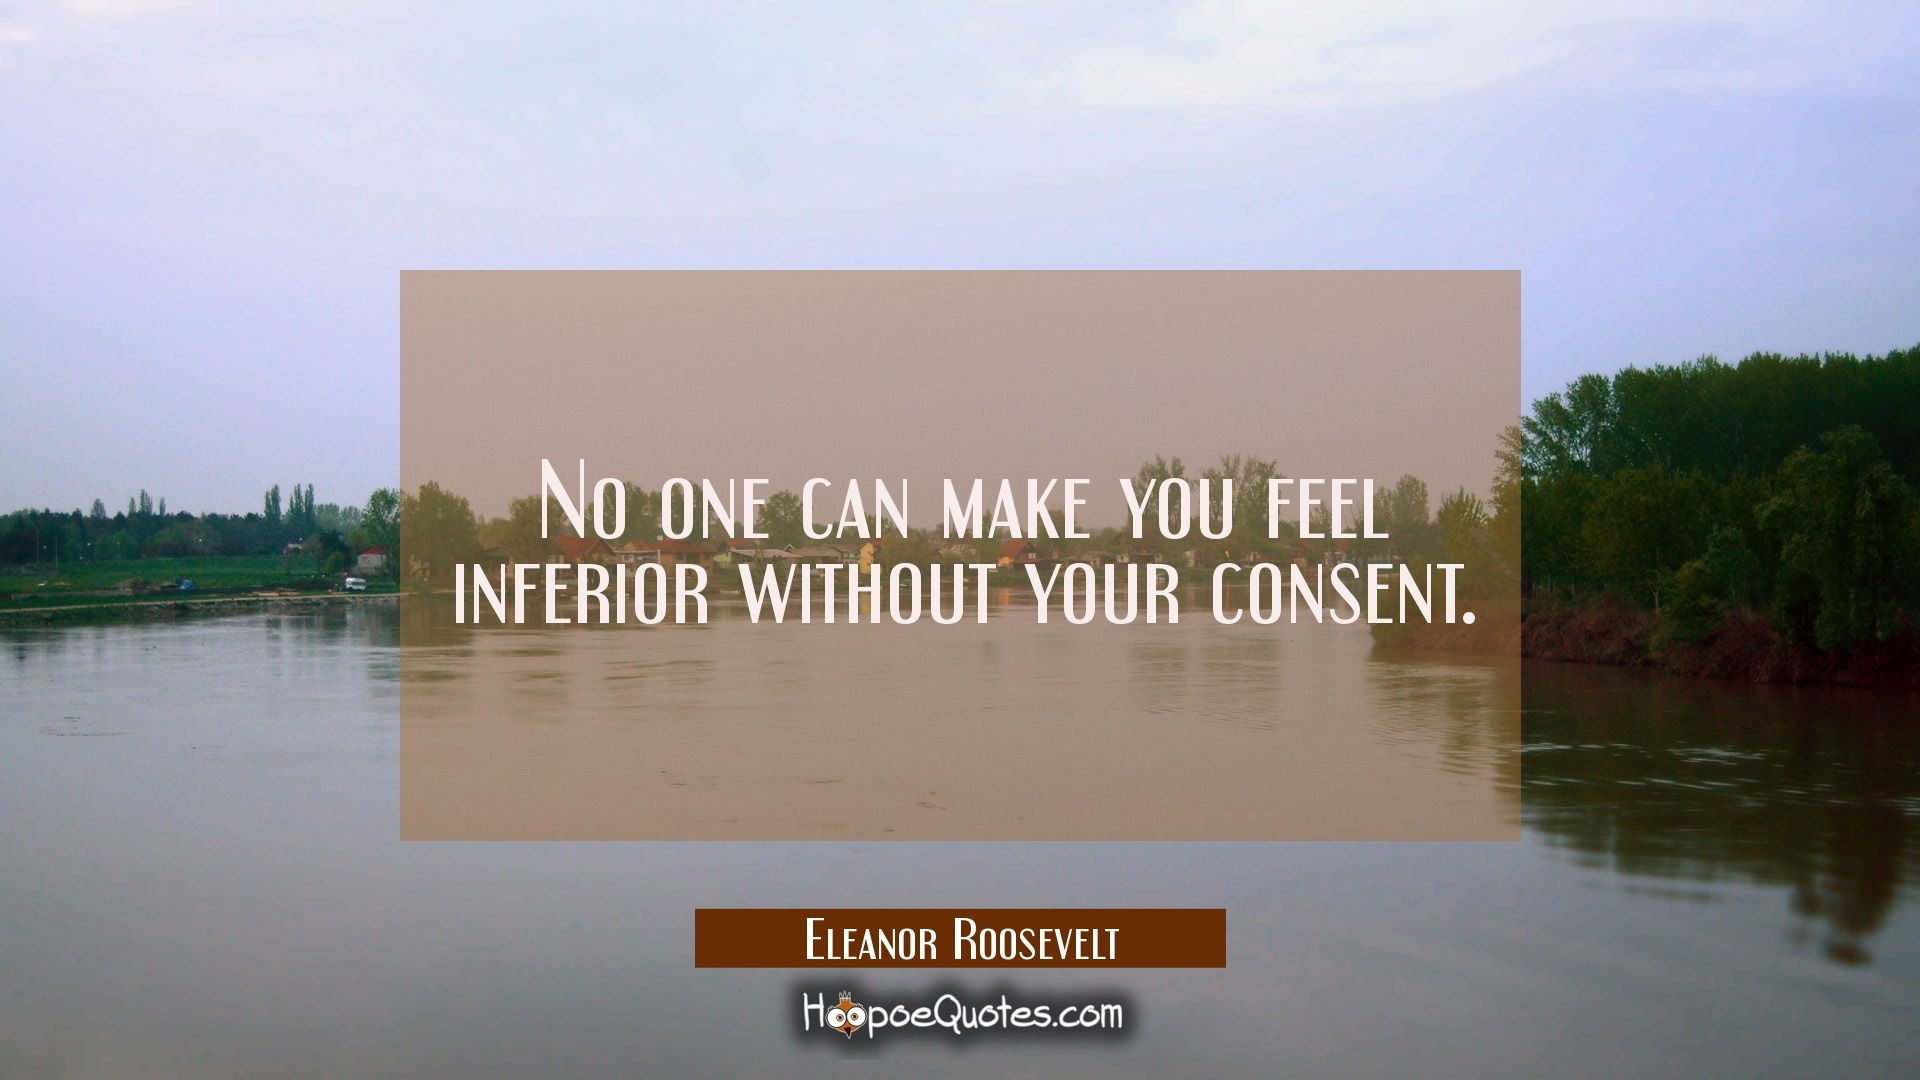 Eleanor Roosevelt Quote Wallpaper Consent No One Can Make You Feel Inferior Without Your Consent